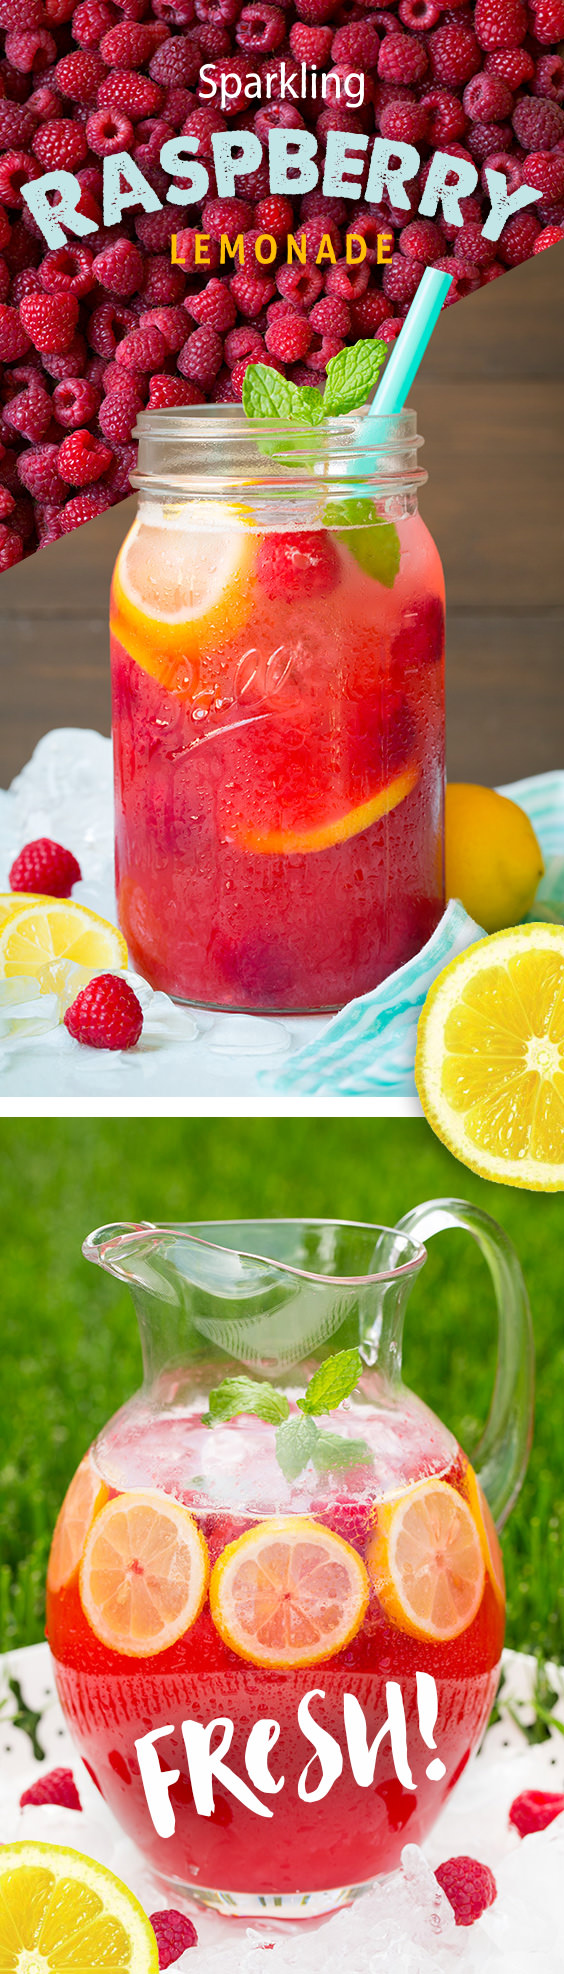 A Heavenly and Colorful drink that is sure to please your taste buds.